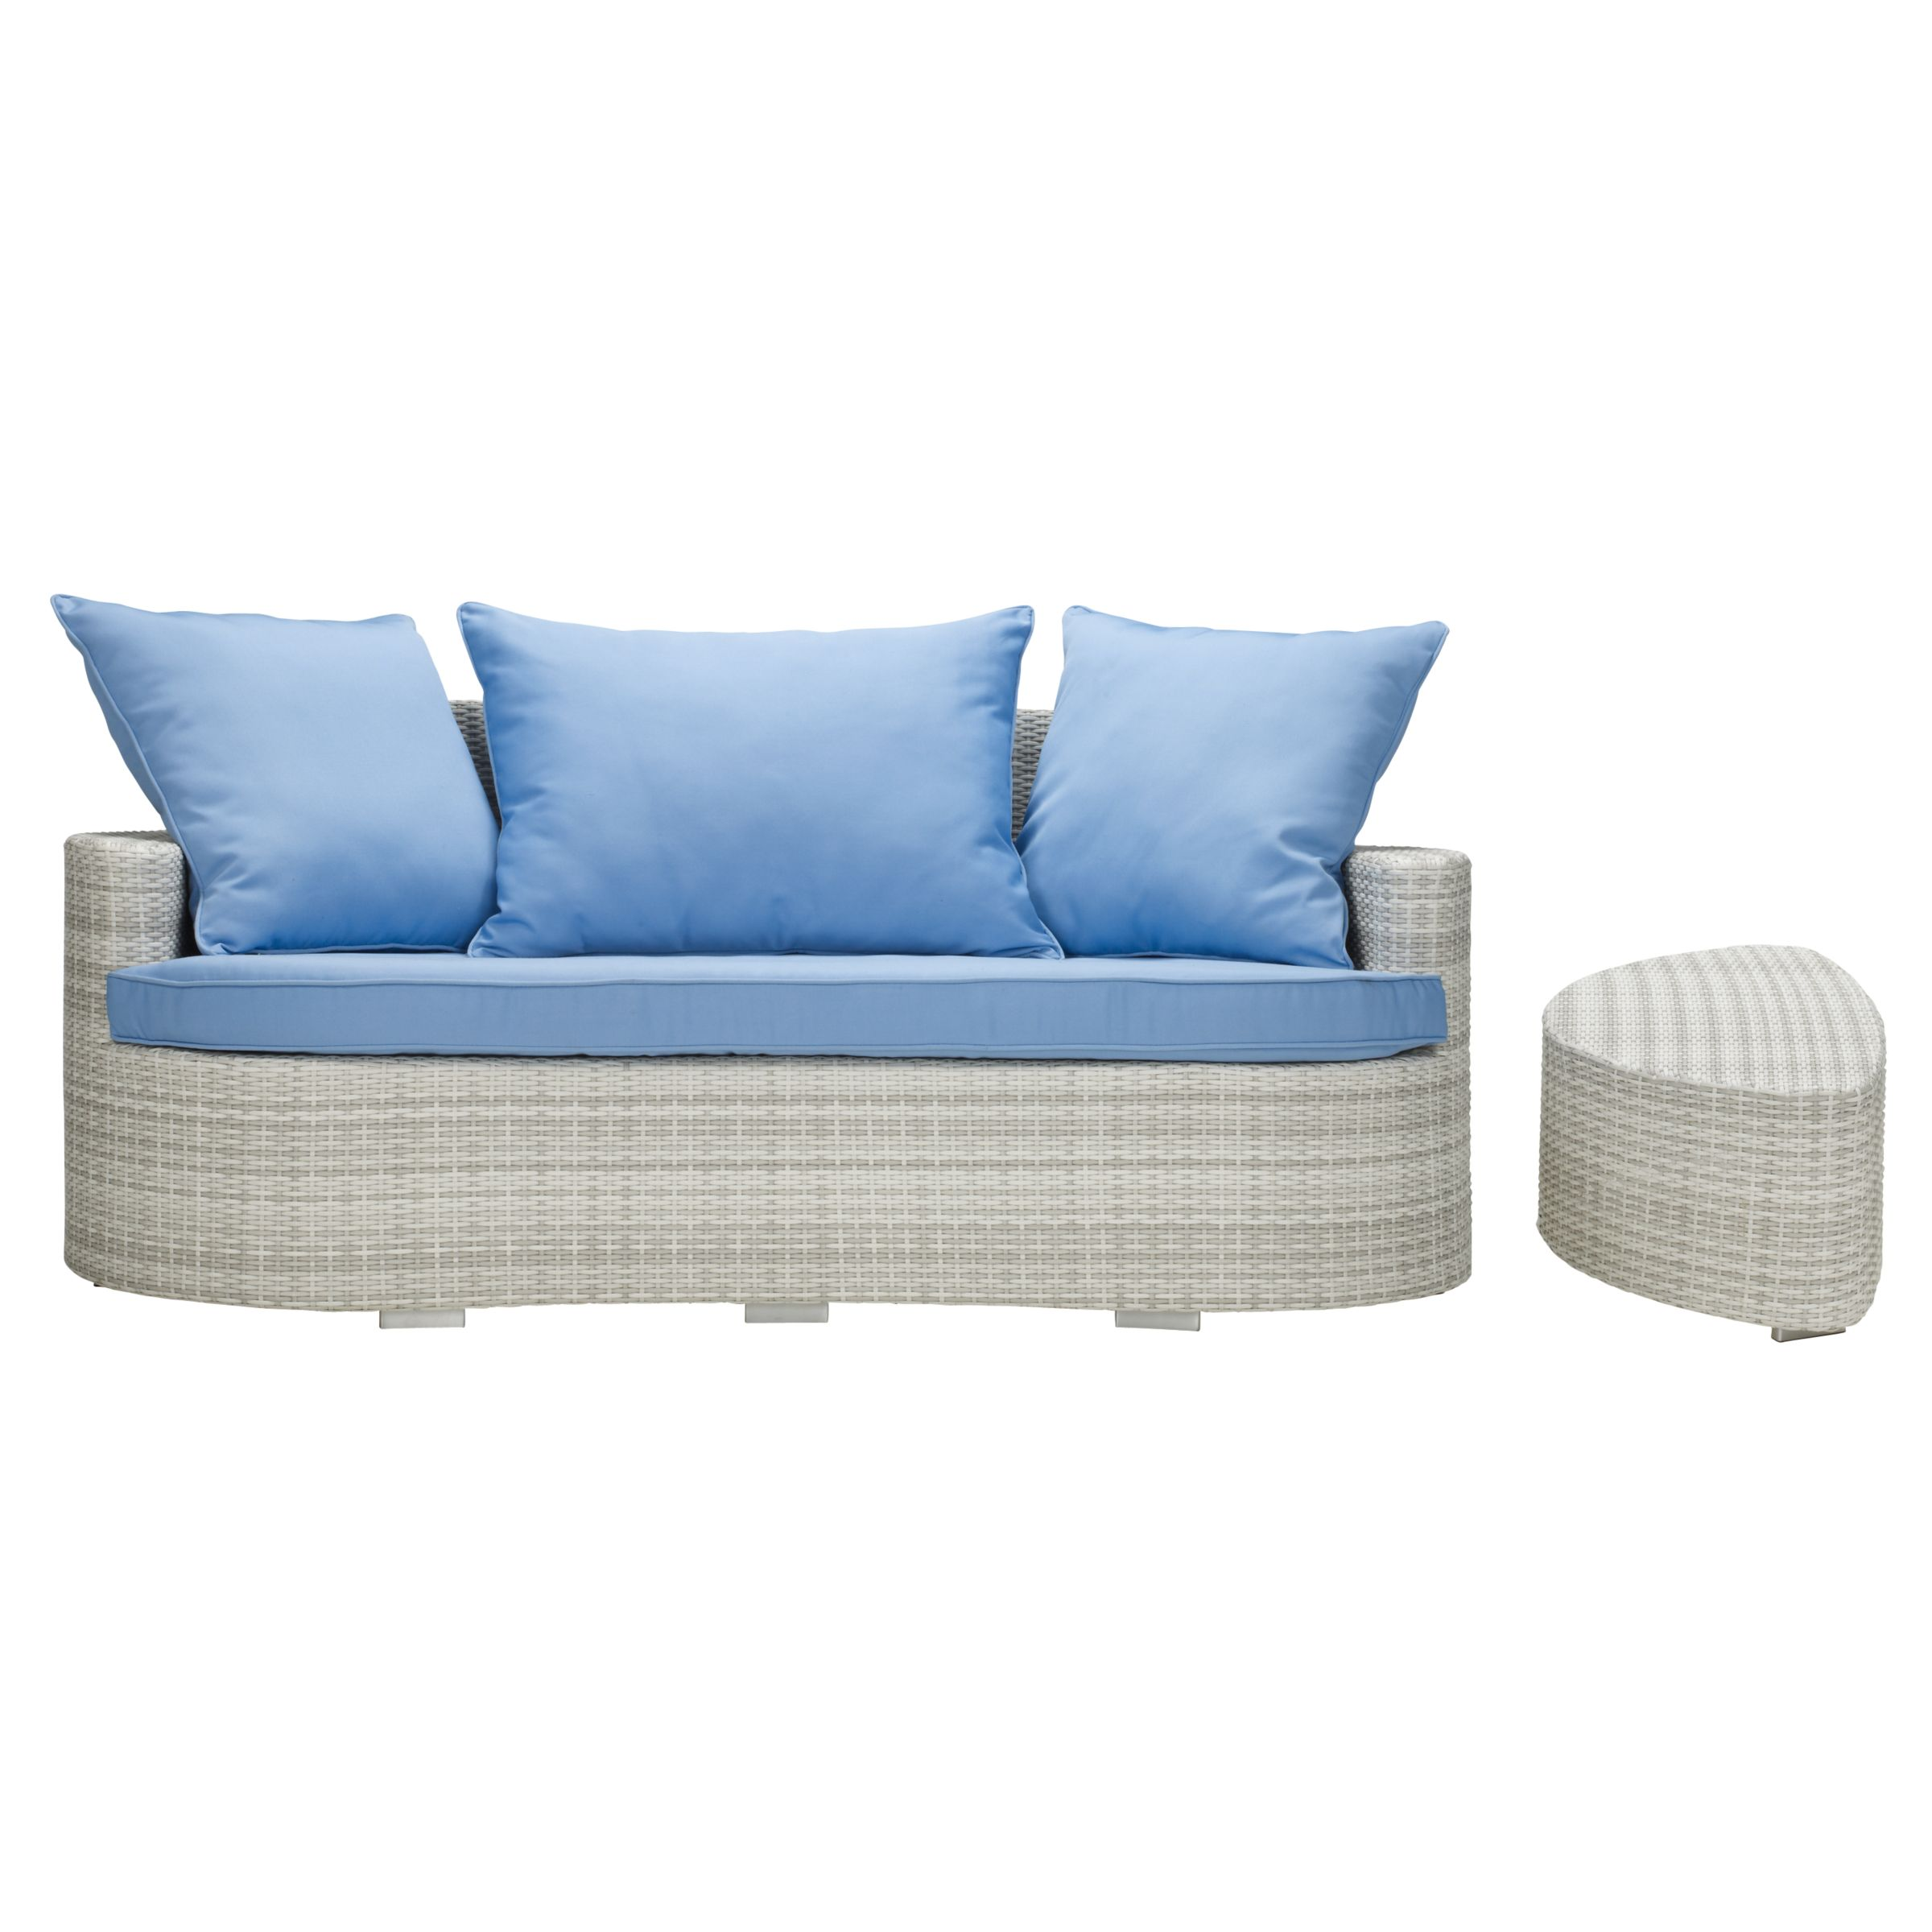 John Lewis St. Tropez Outdoor Sofa and Table